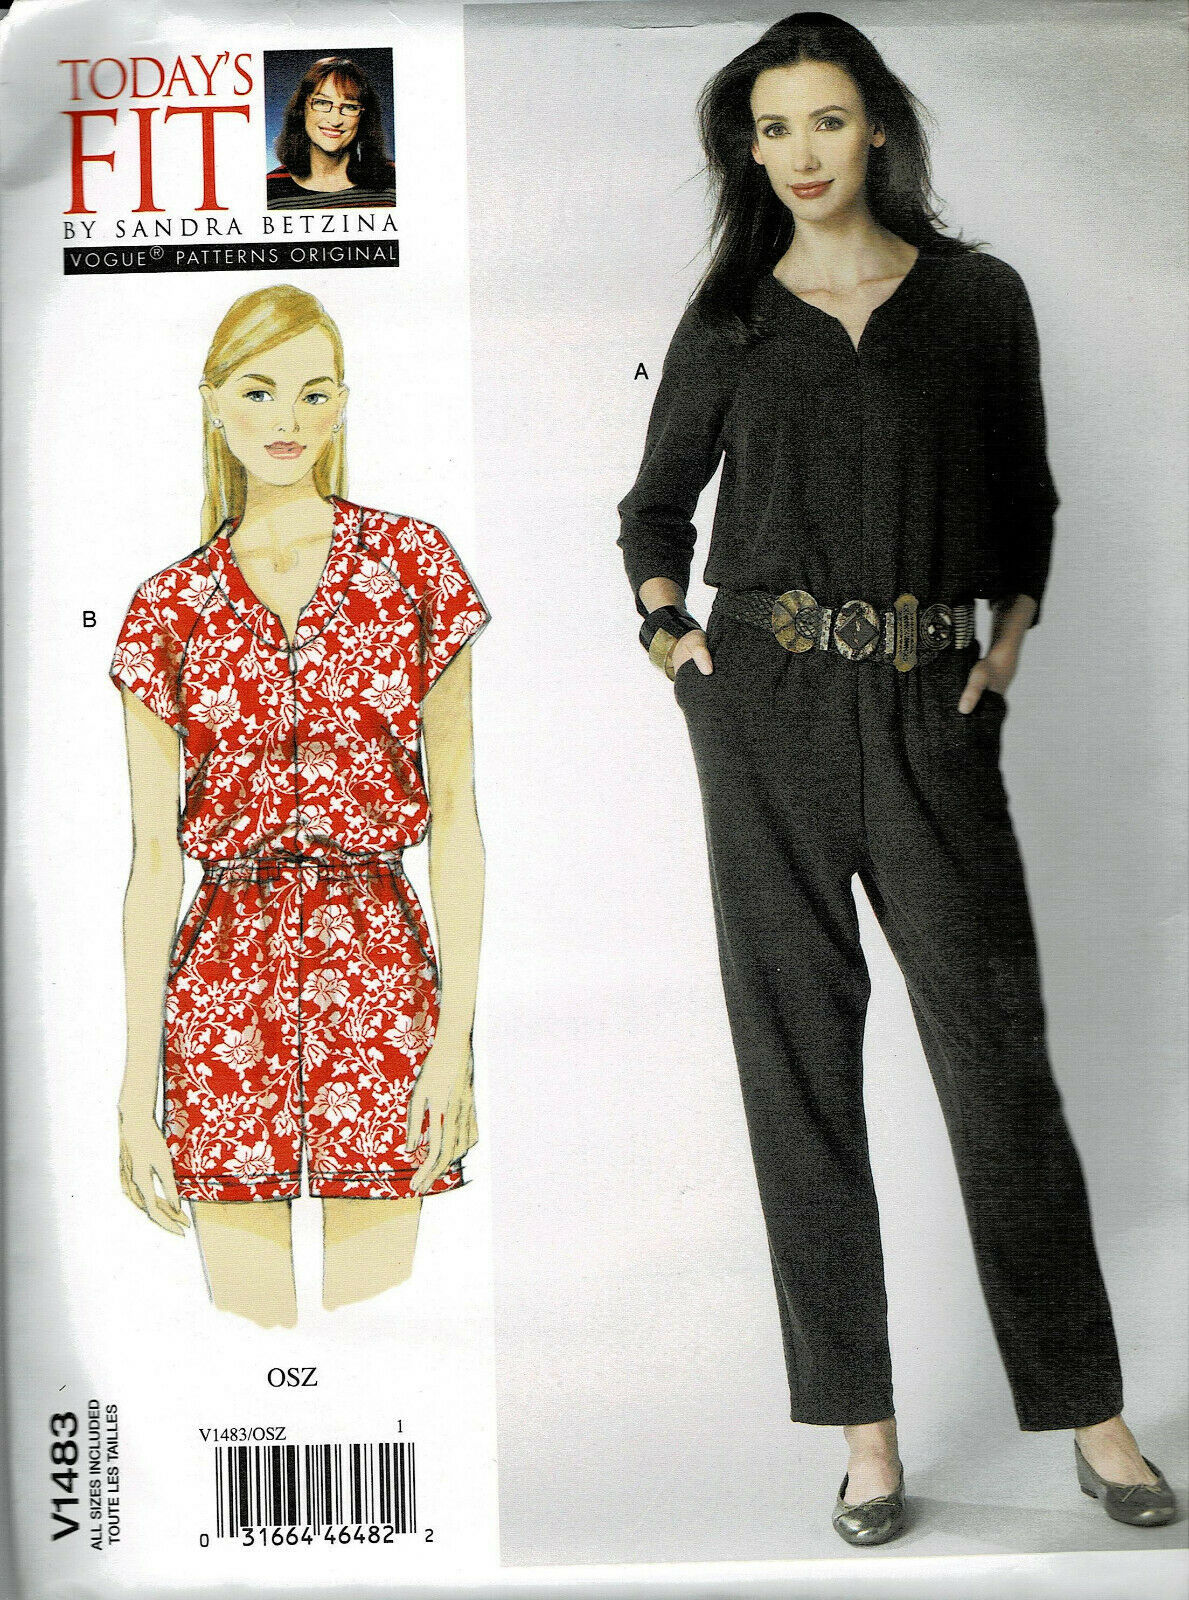 Primary image for Vogue Pattern V1483 Today's Fit Jumpsuit Cat Suit Short or Long Length All Sizes